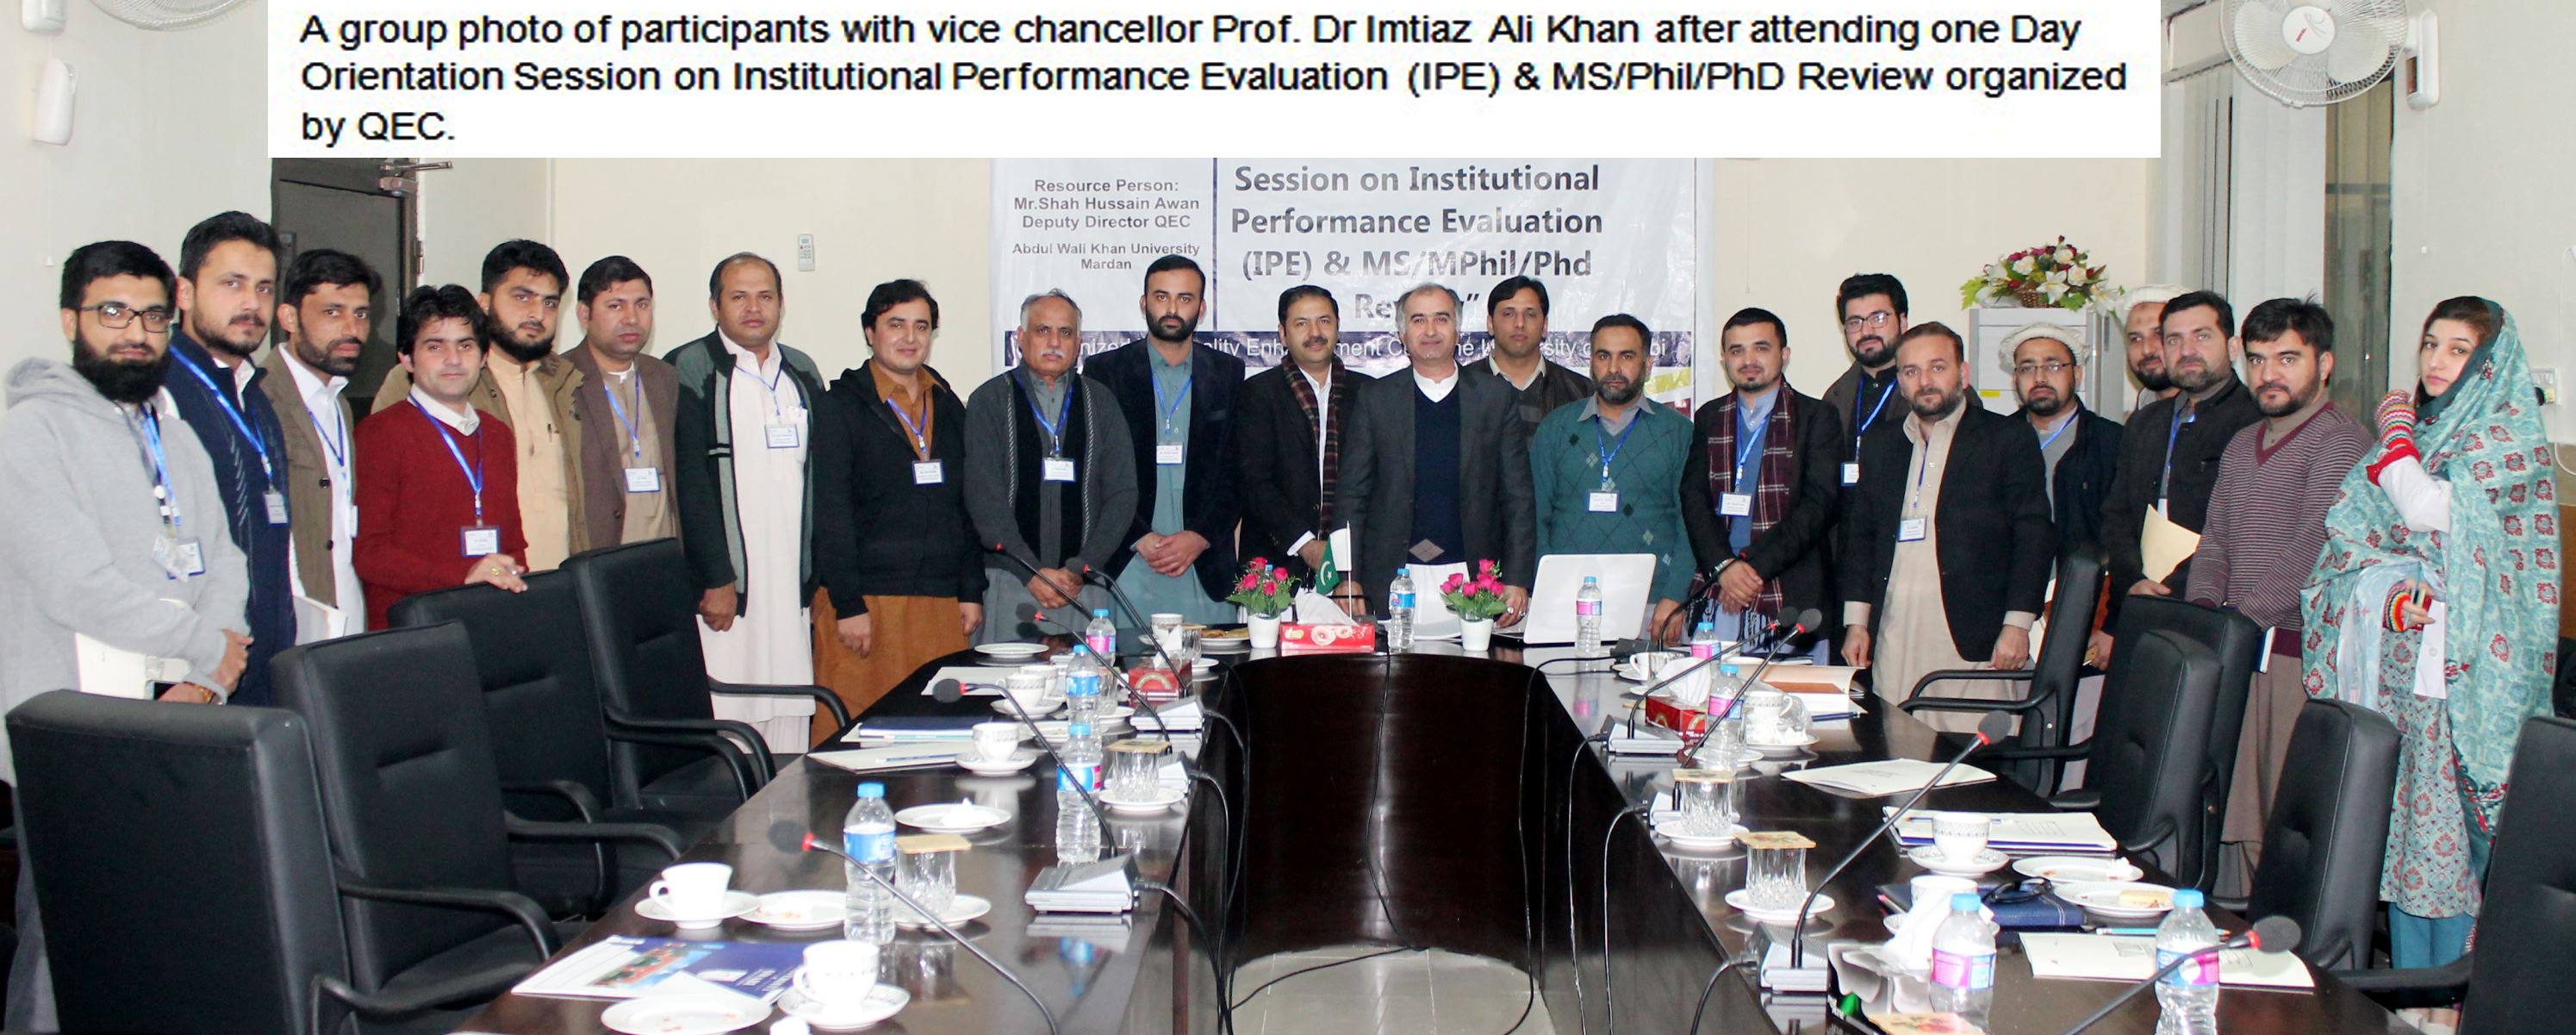 A group photo of participants with vice chancellor Prof. Dr Imtiaz Ali Khan after attending one Day Orientation Session on Institutional Performance Evaluation (IPE) & MS/Phil/PhD Review organized by QEC.